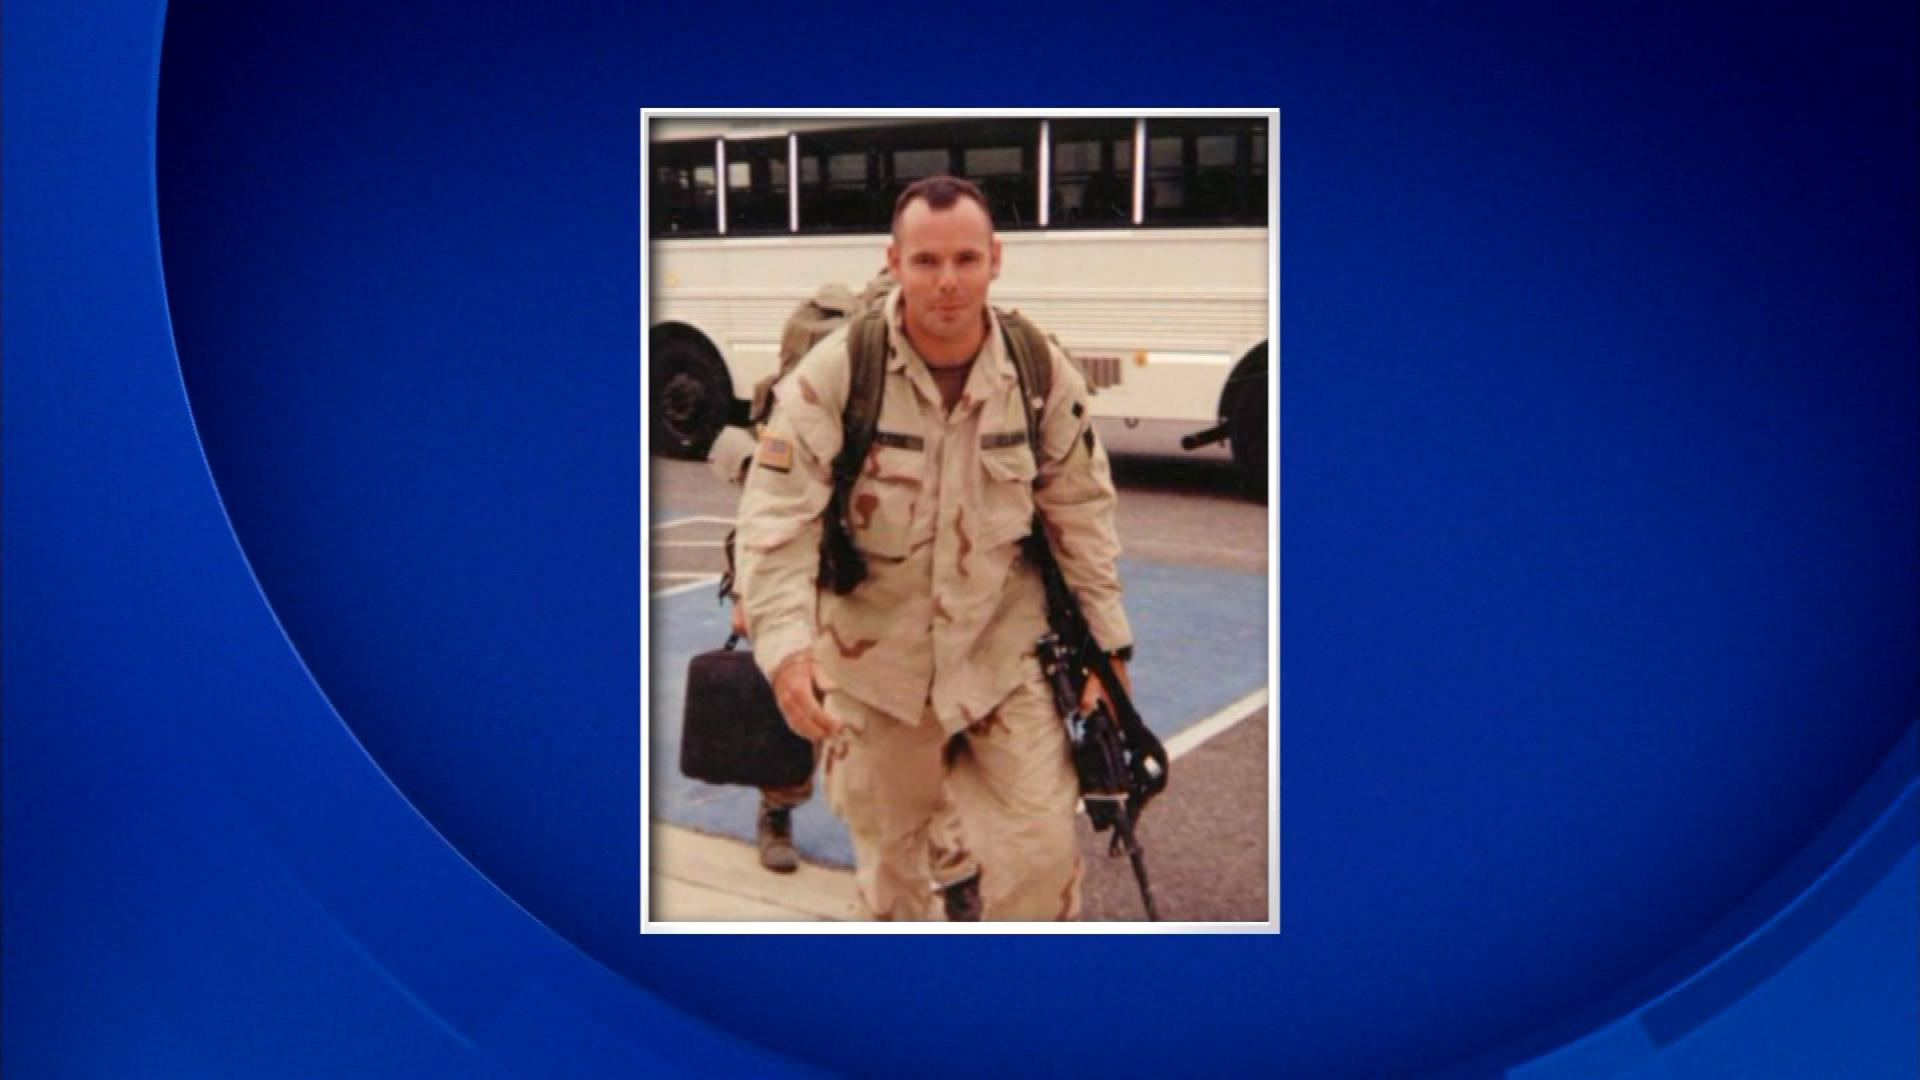 U.S. Army Cpt. Russell Rippetoe (credit: CBS)